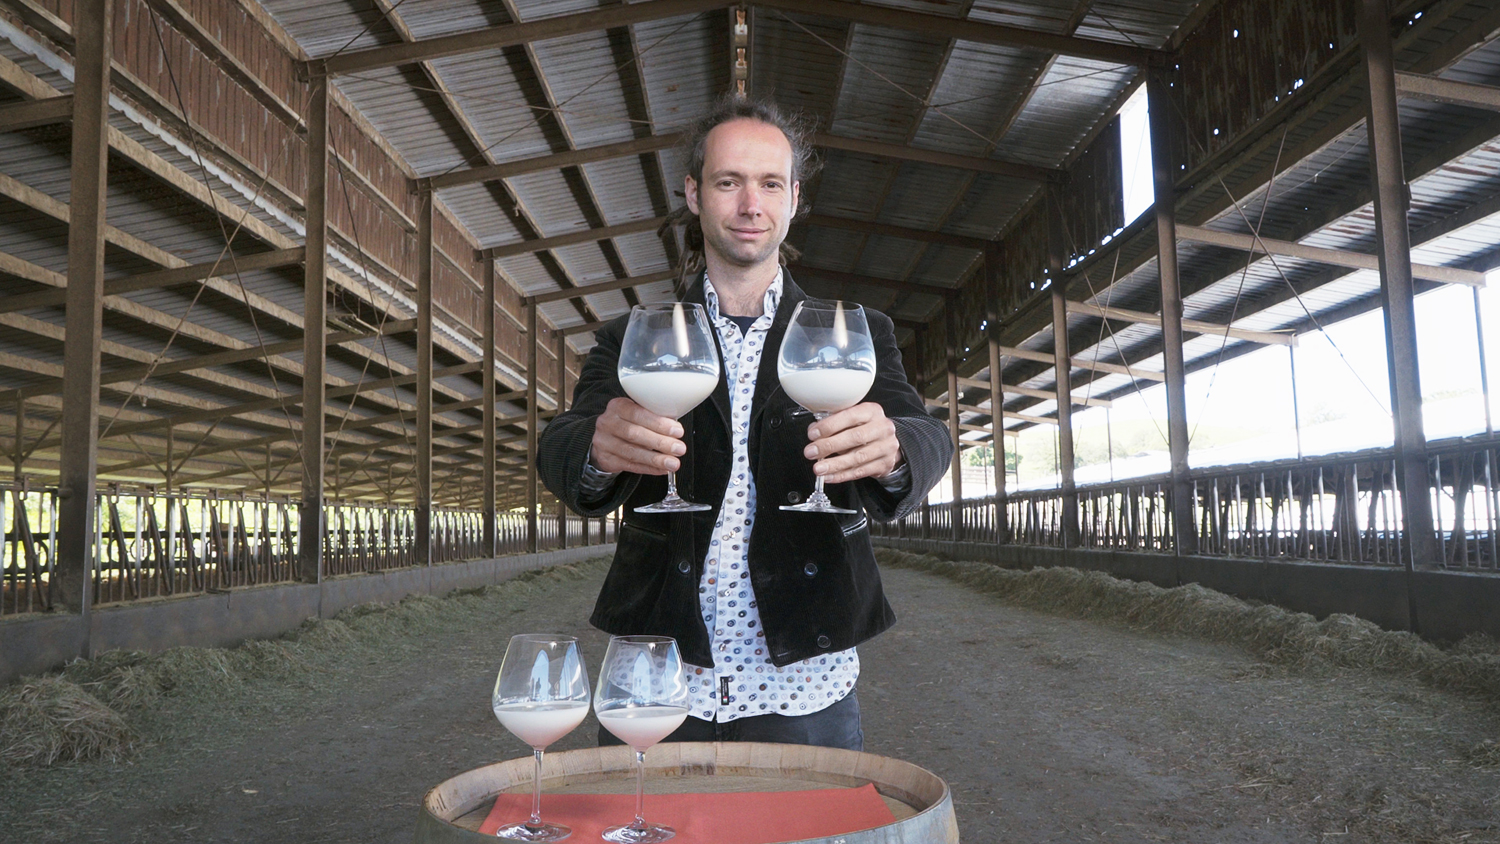 worlds first milk sommelier